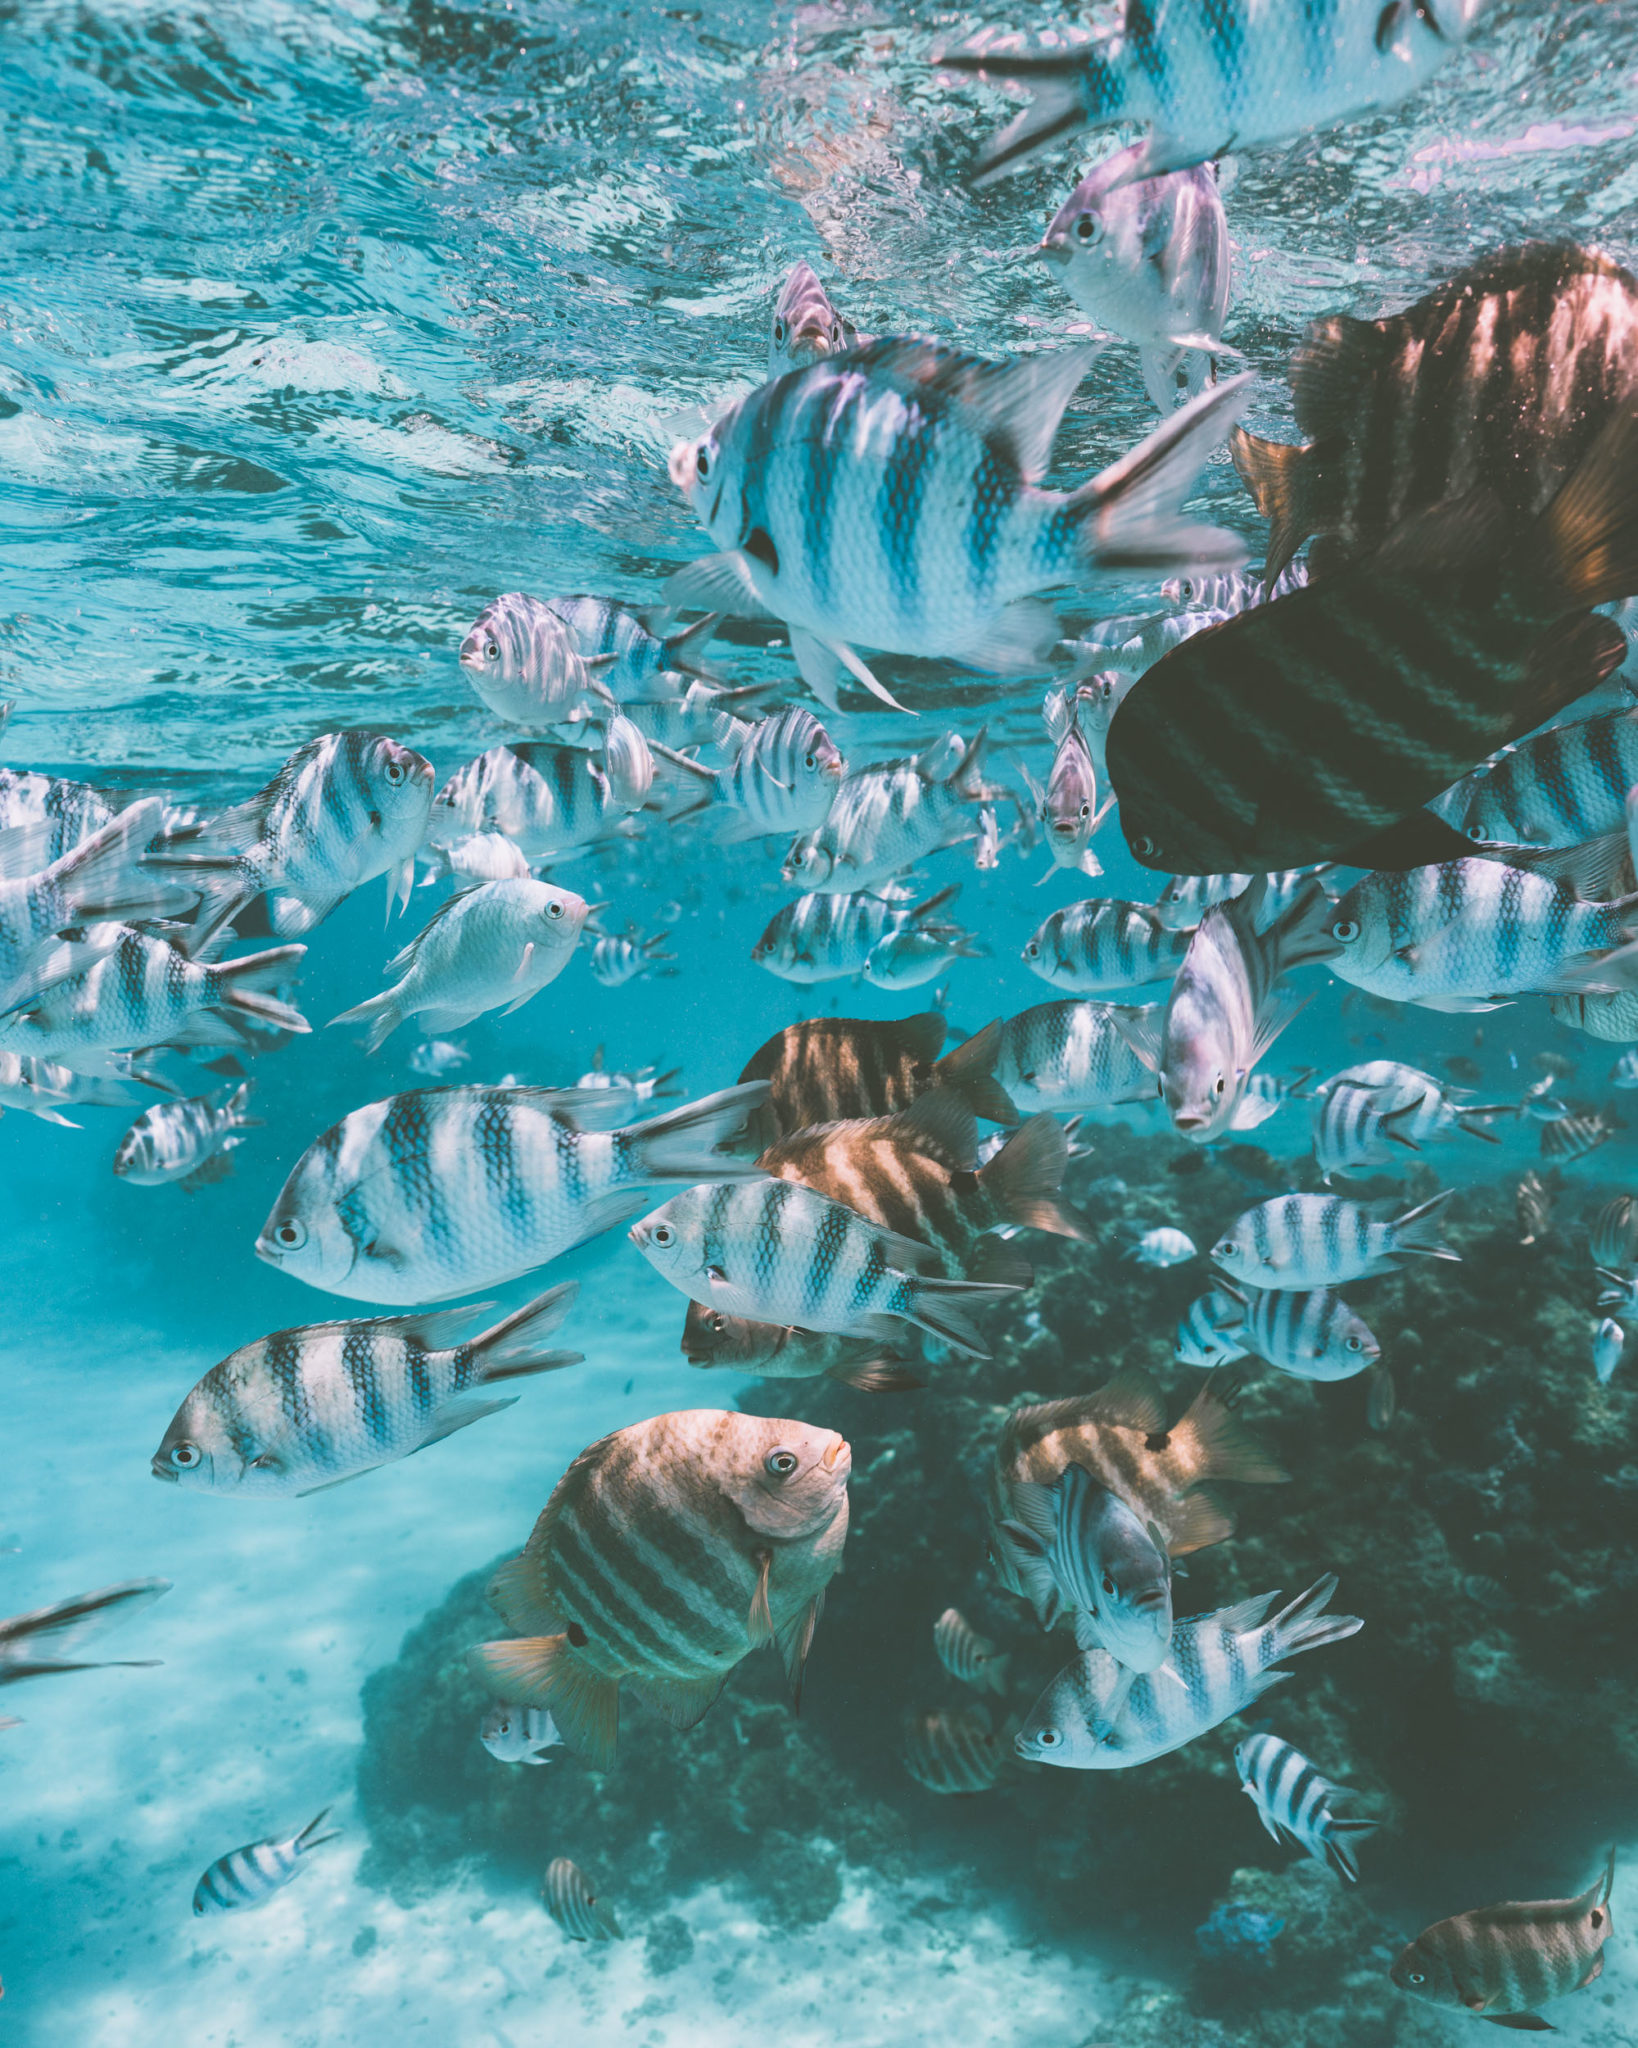 Underwater coral reefs at Four Seasons Bora Bora in Tahiti for our honeymoon via @finduslost